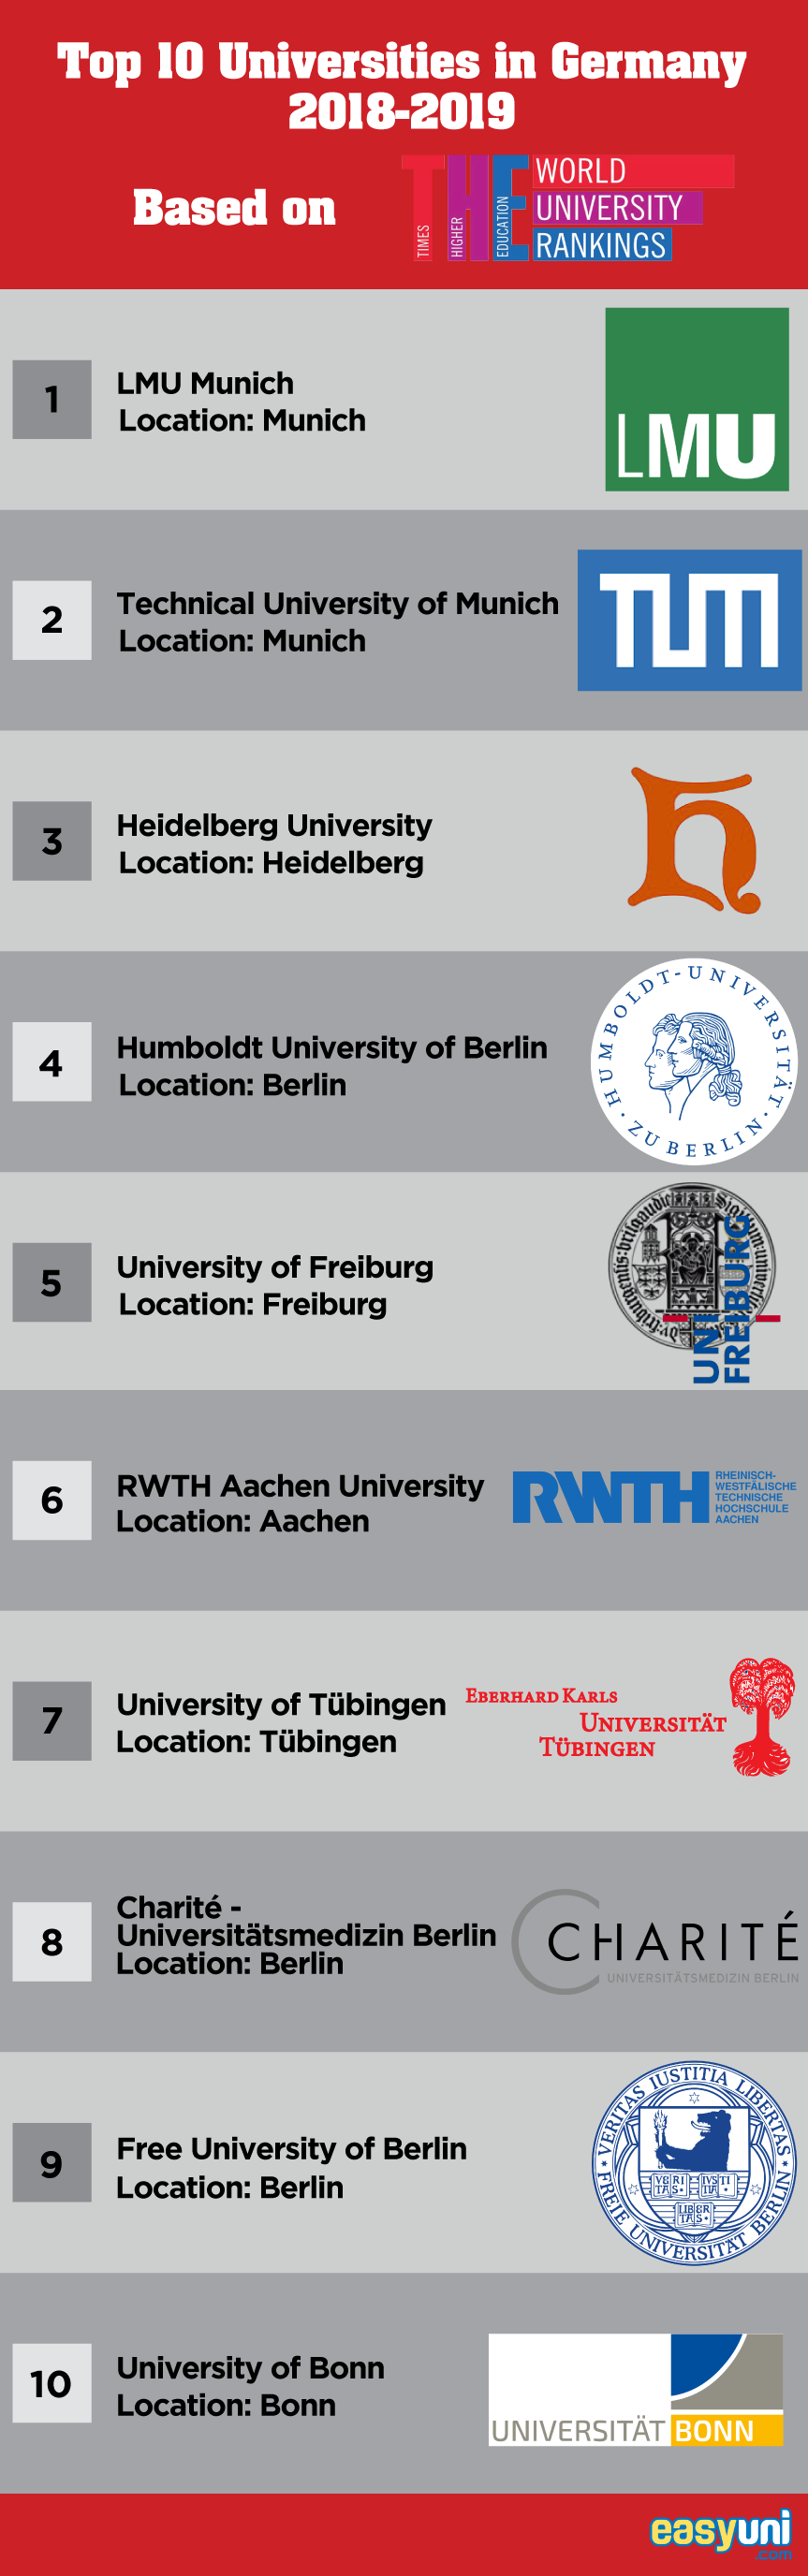 Top 10 Universities in Germany